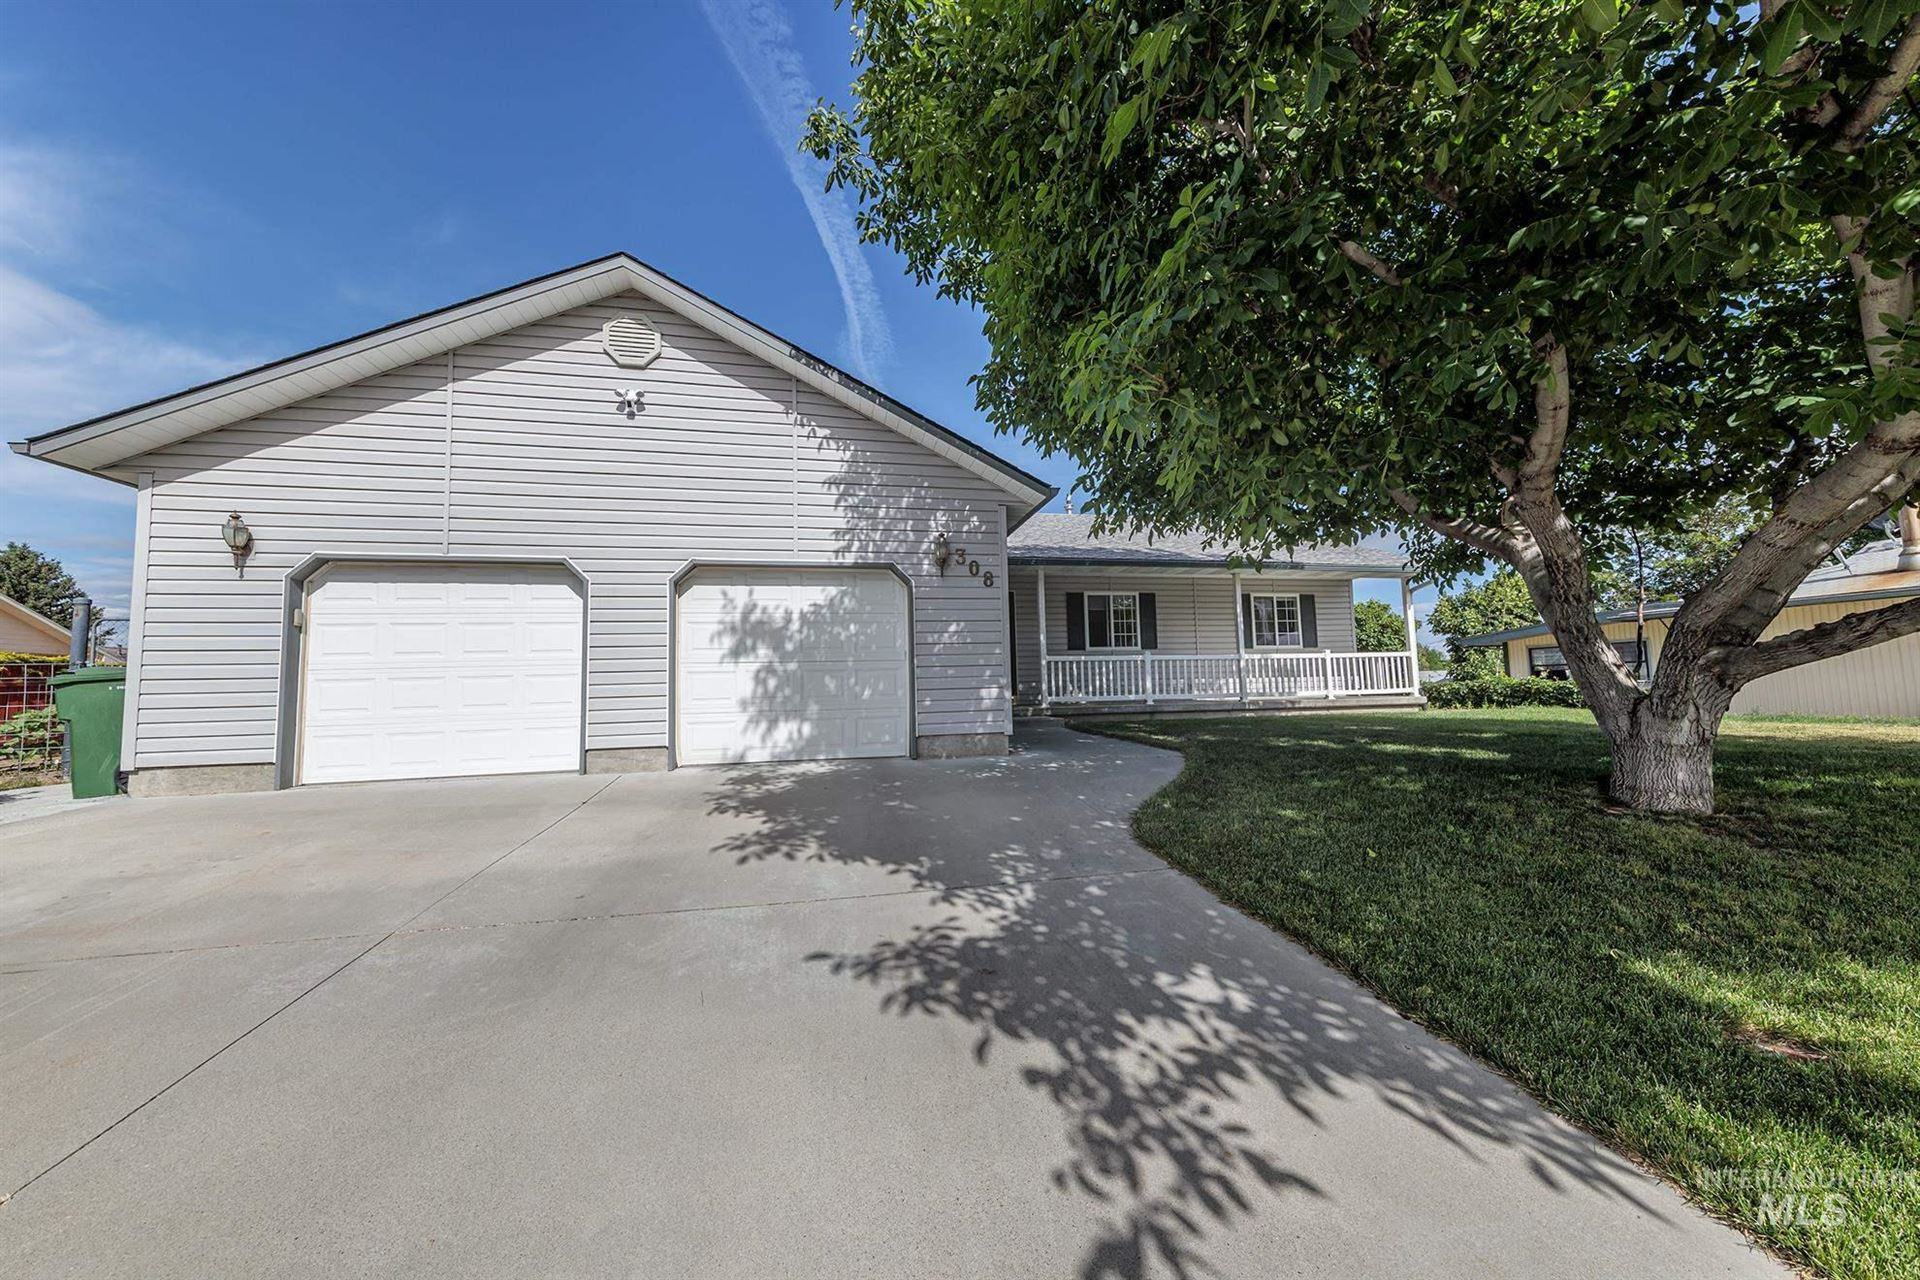 Photo of 308 NW 17th St, Ontario, OR 97914 (MLS # 98806955)